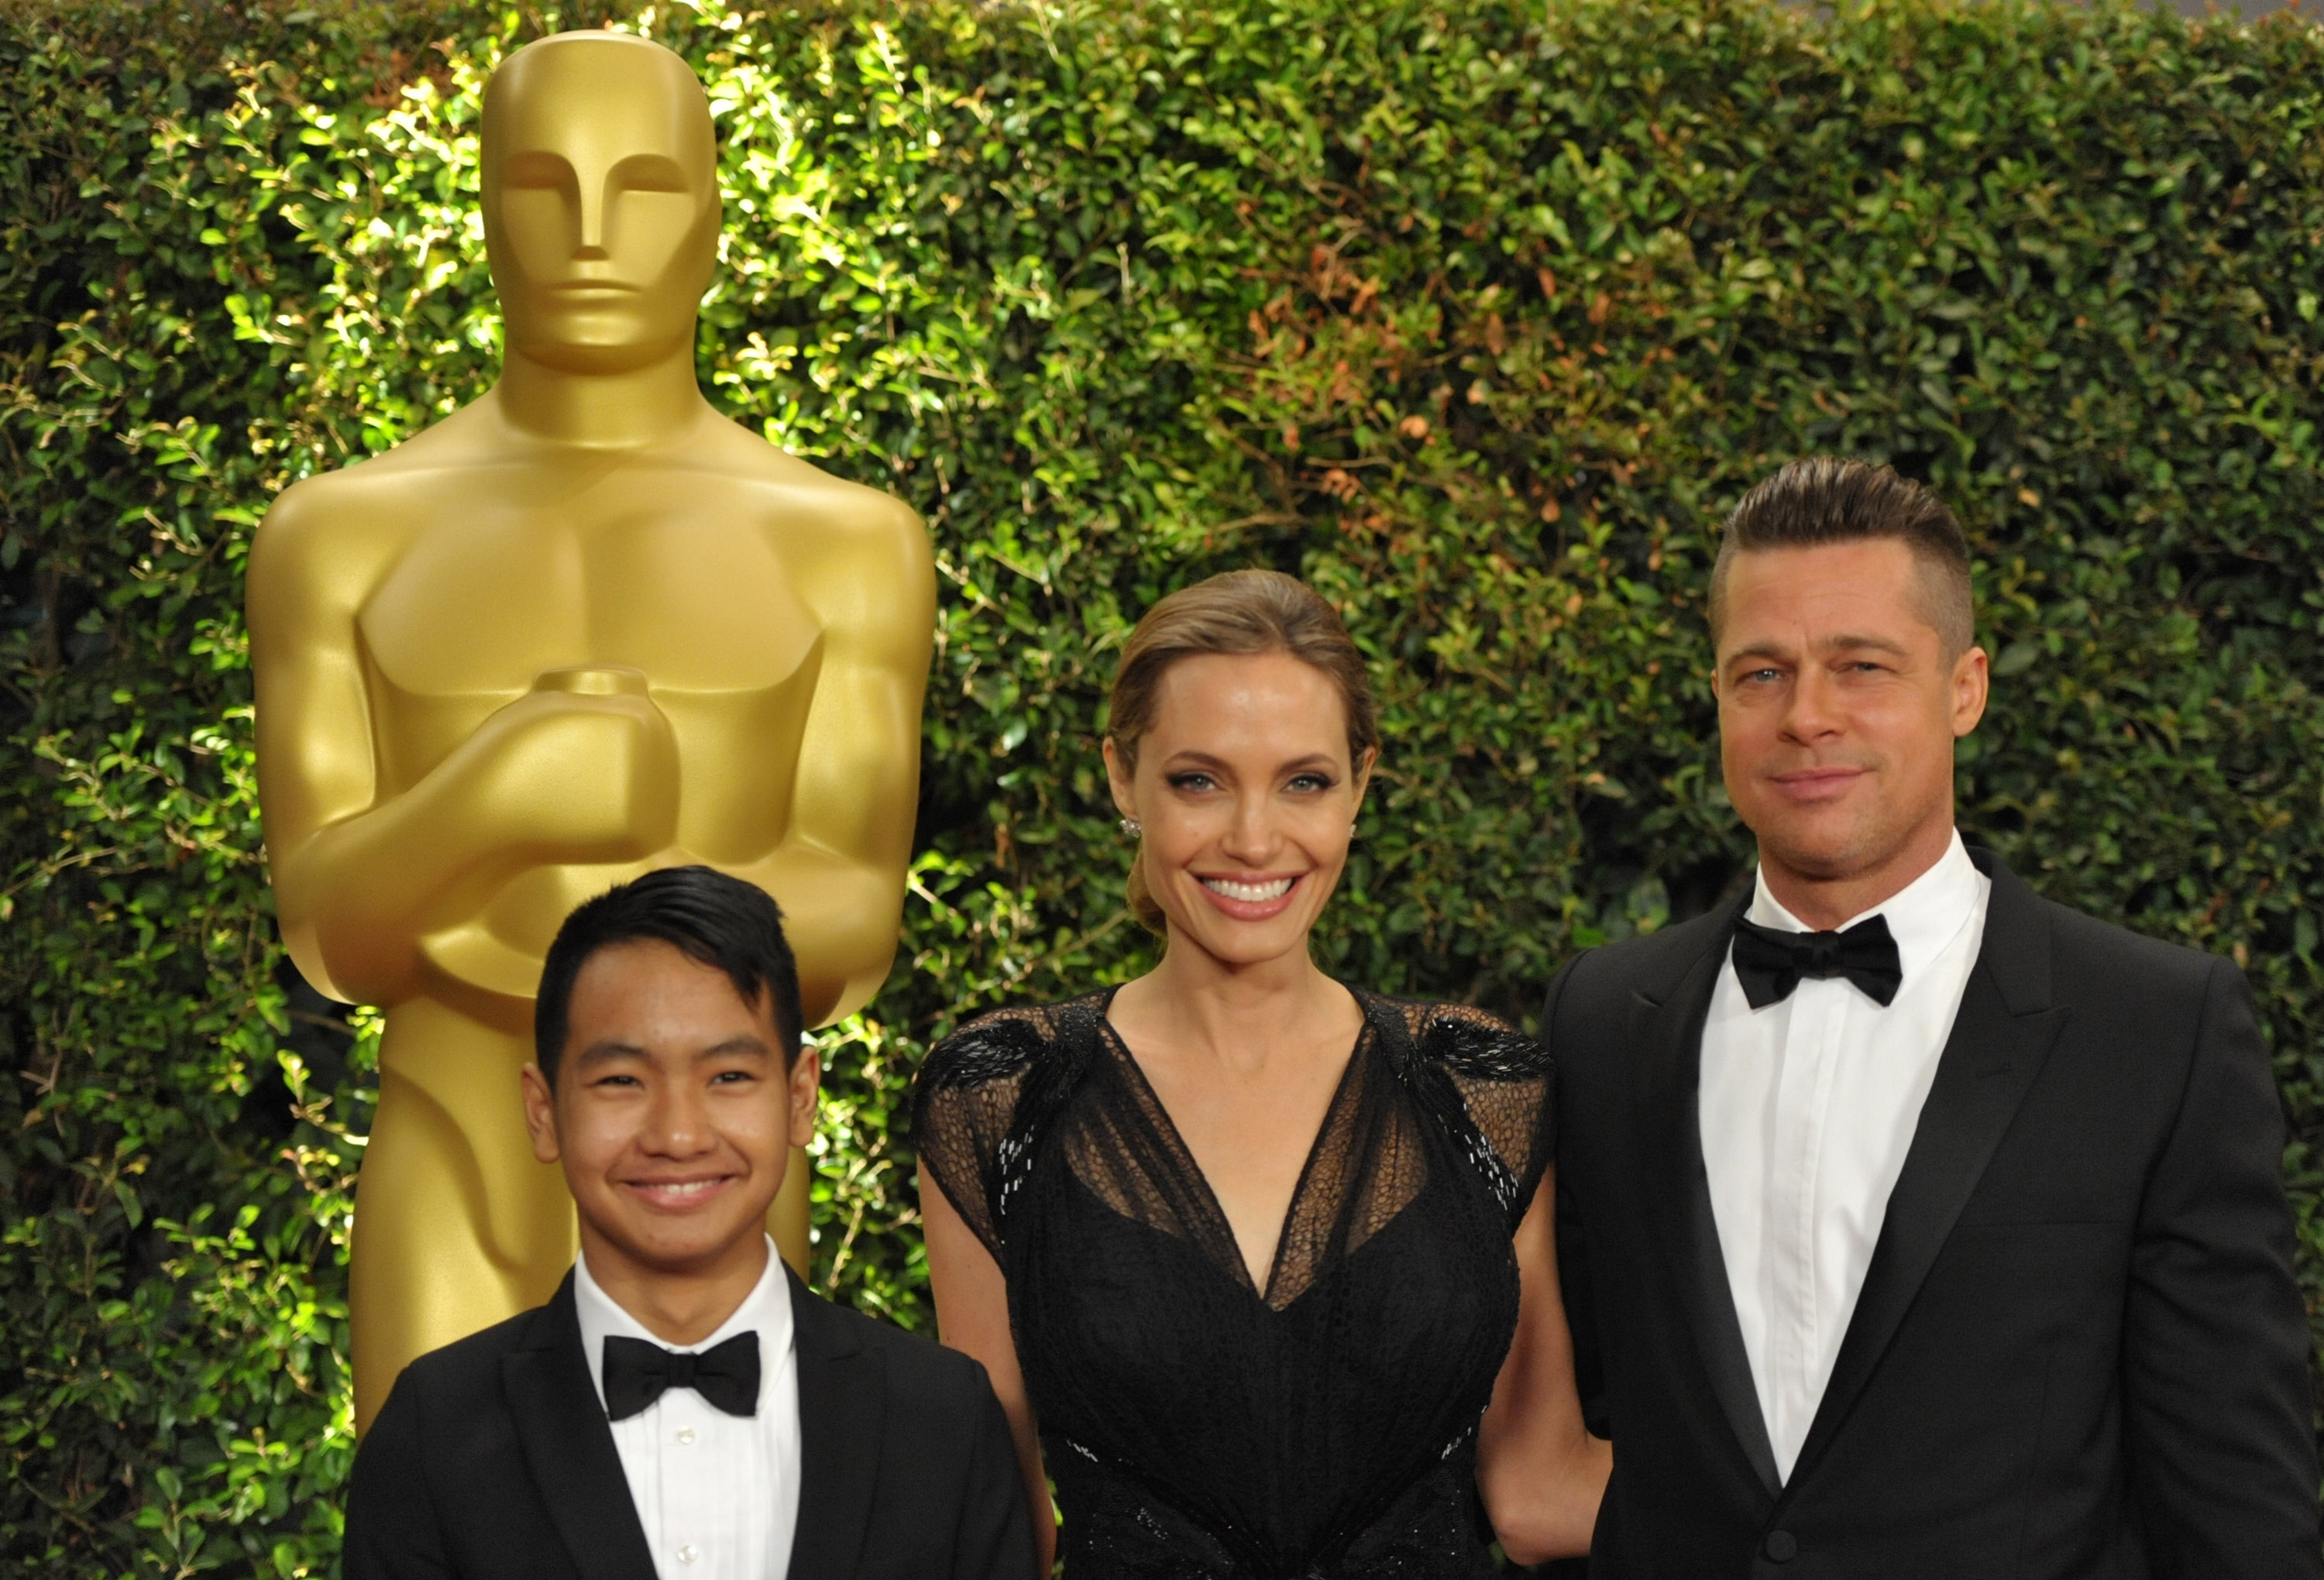 Brad Pitt's son Maddox reportedly refused to see him after split